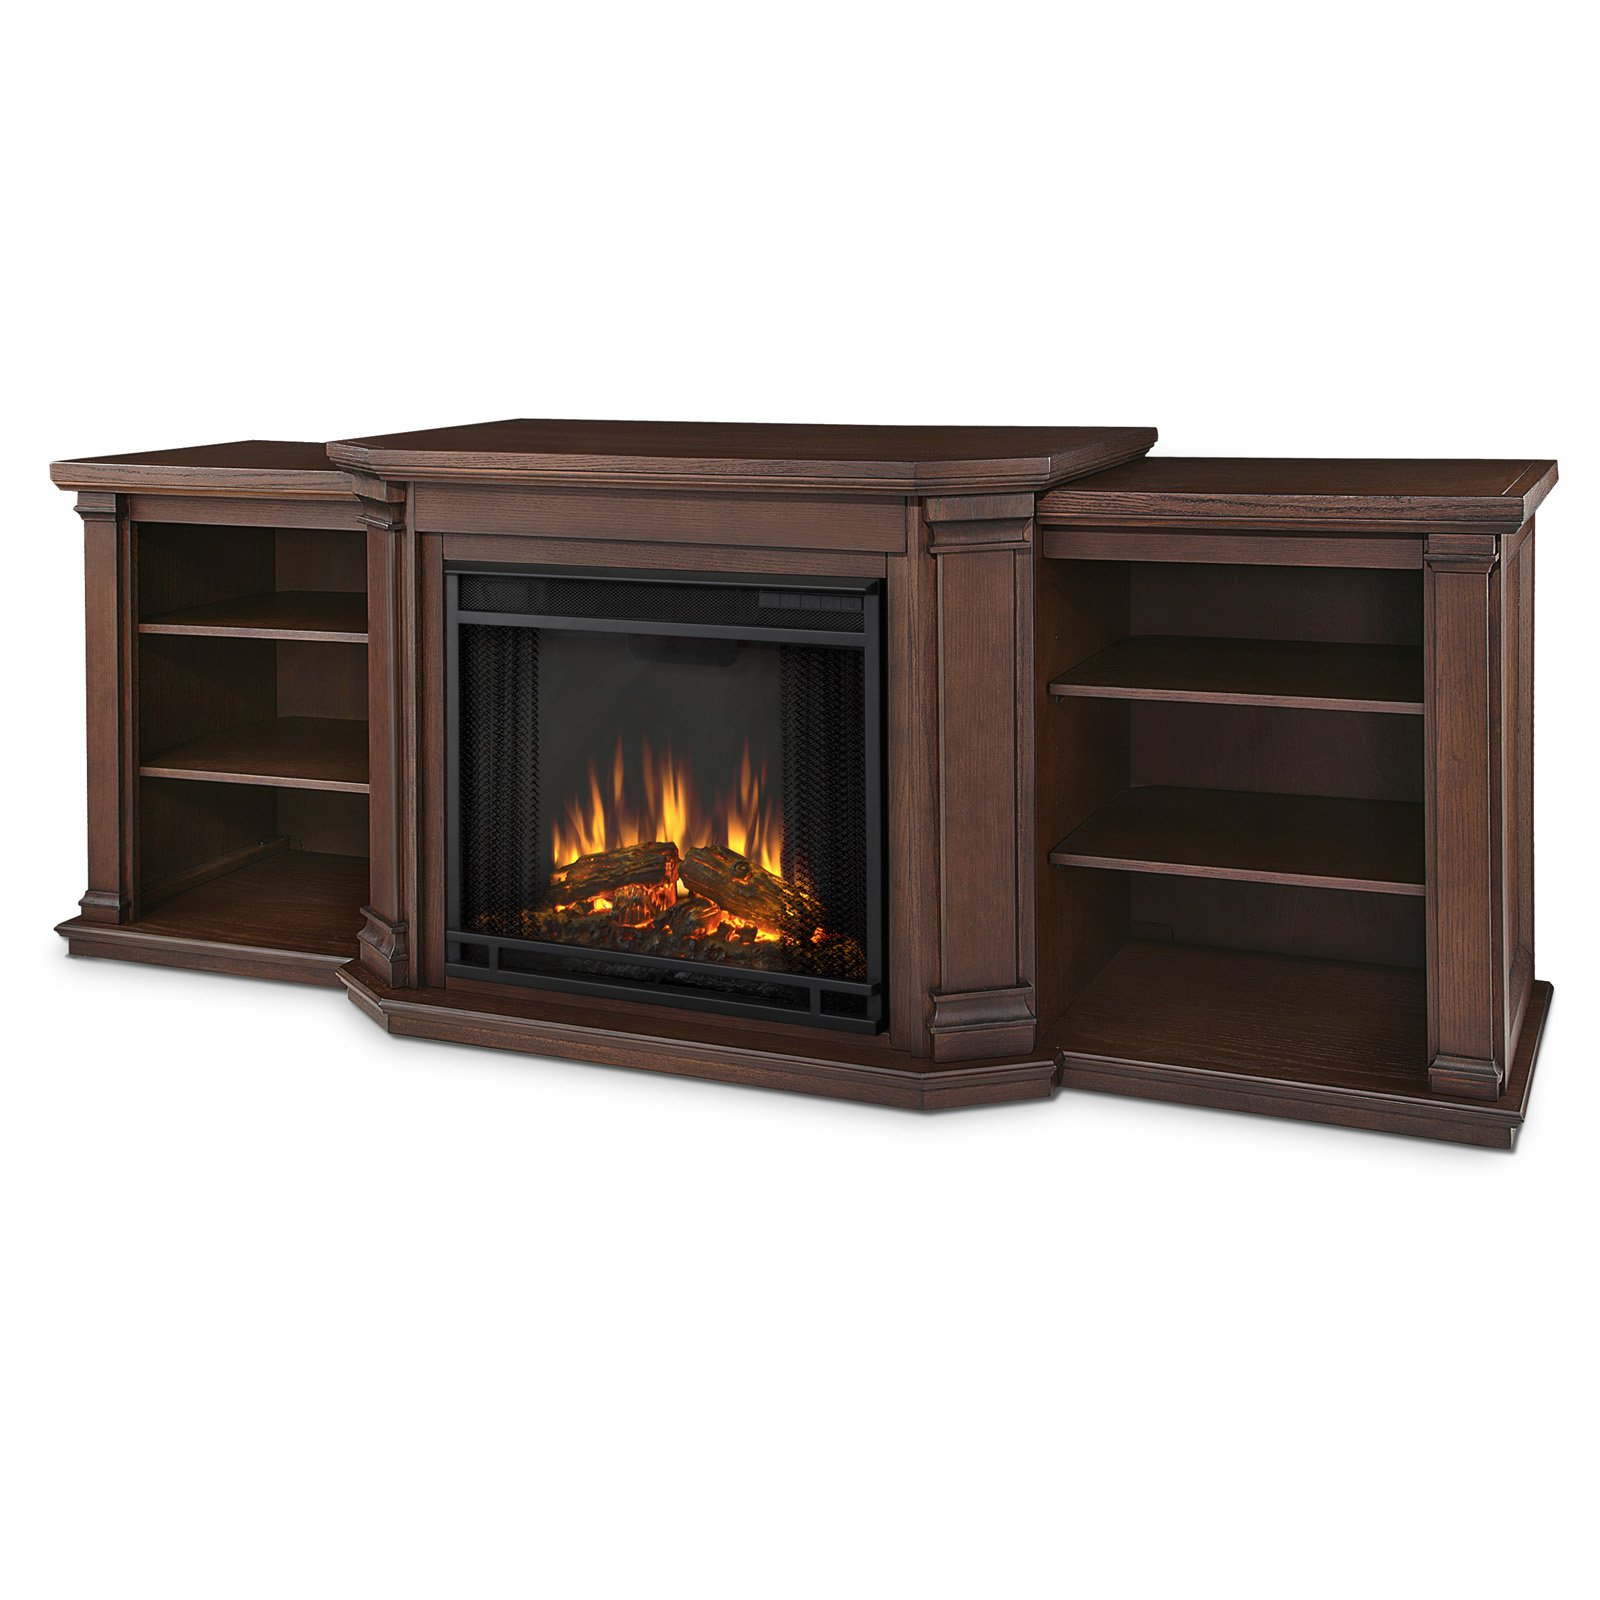 Real Flame Valmont Entertainment Center Electric Fireplace